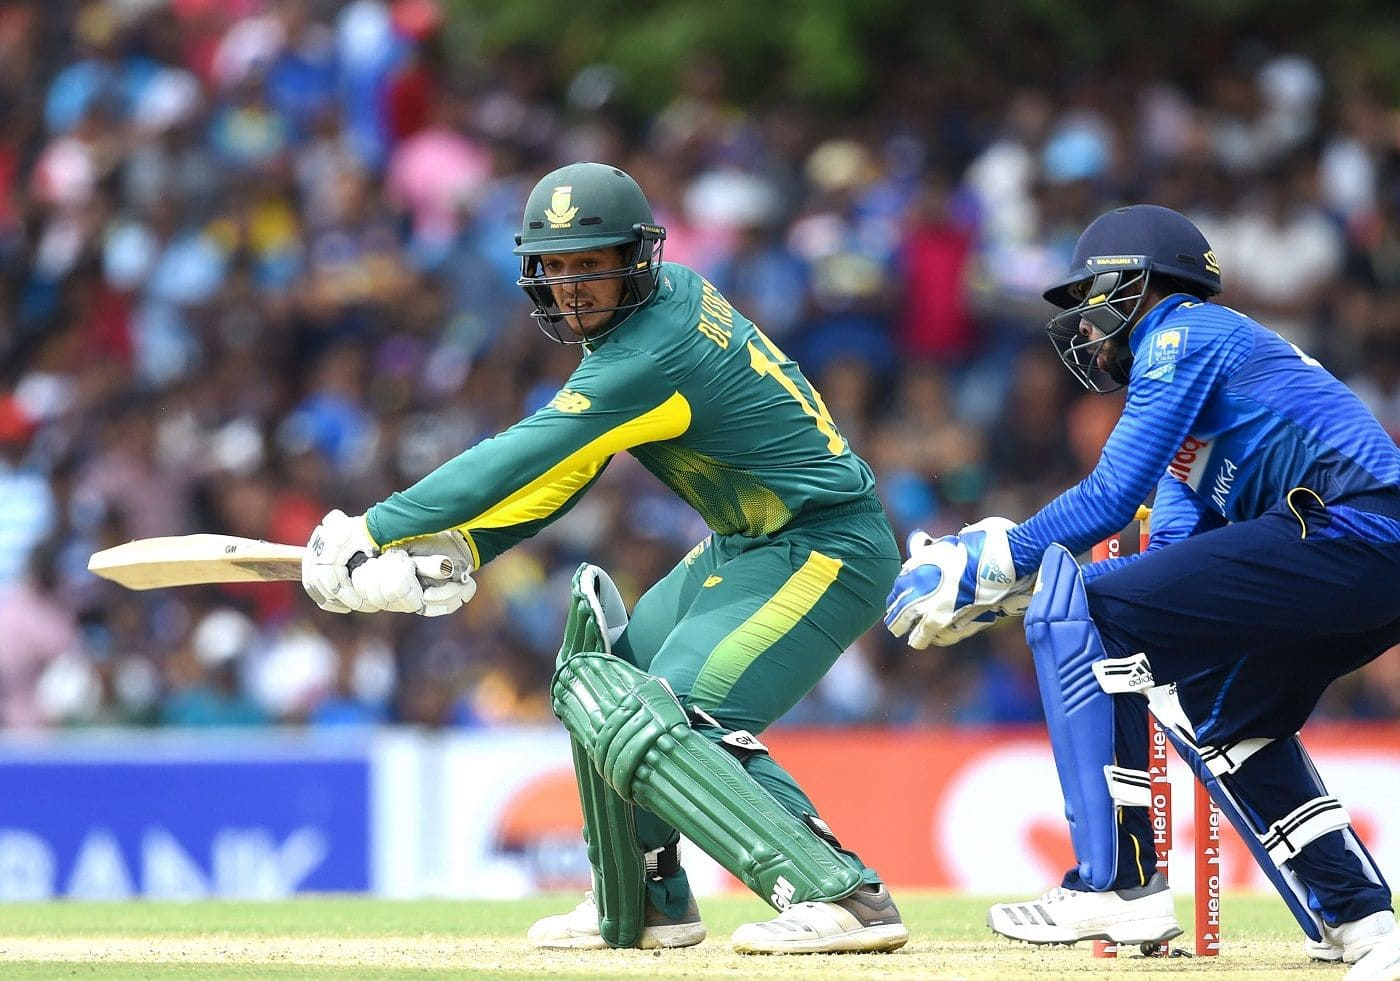 Captaining in two ODIs will allow Quinton de Kock to grow: Faf du Plessis